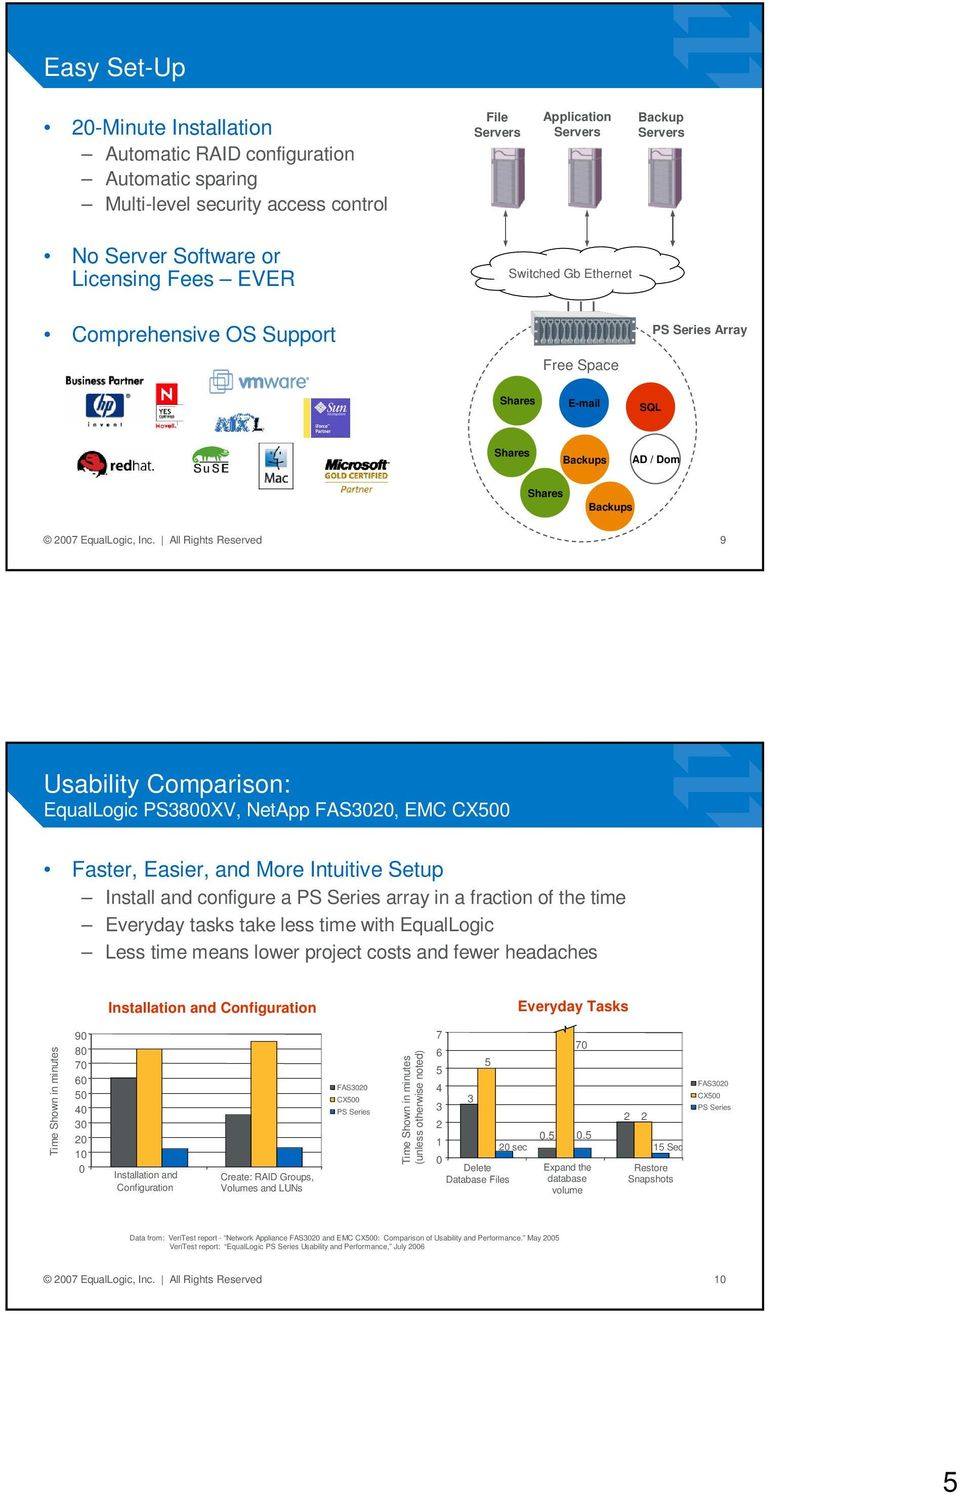 All Rights Reserved 9 Usability Comparison: EqualLogic PS3800XV, NetApp FAS300, EMC CX500 Faster, Easier, and More Intuitive Setup Install and configure a PS Series array in a fraction of the time